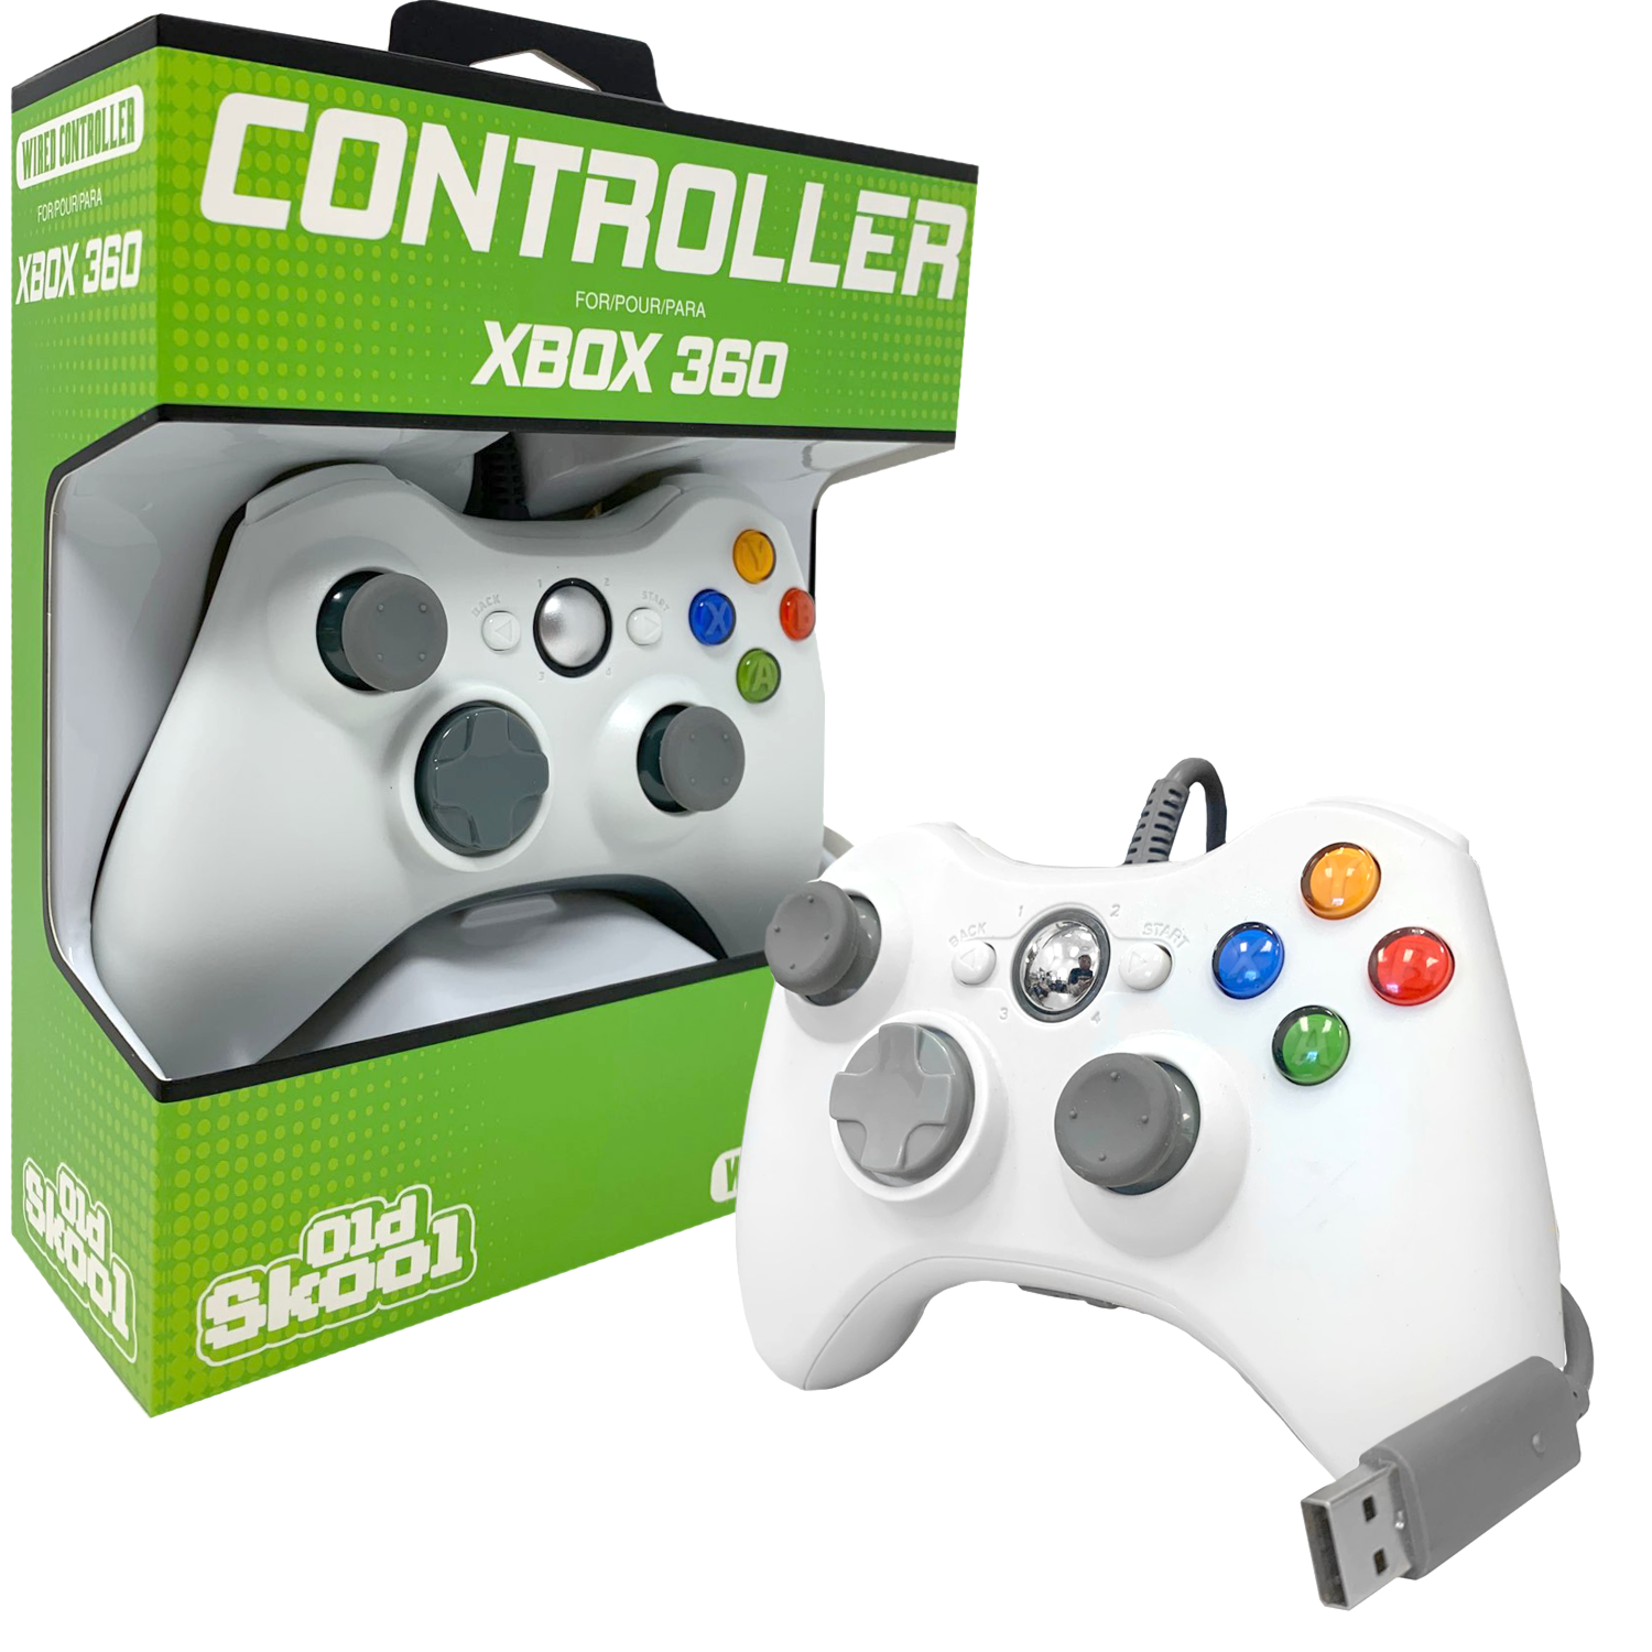 Wired Xbox 360 Controller - White - Old Skool